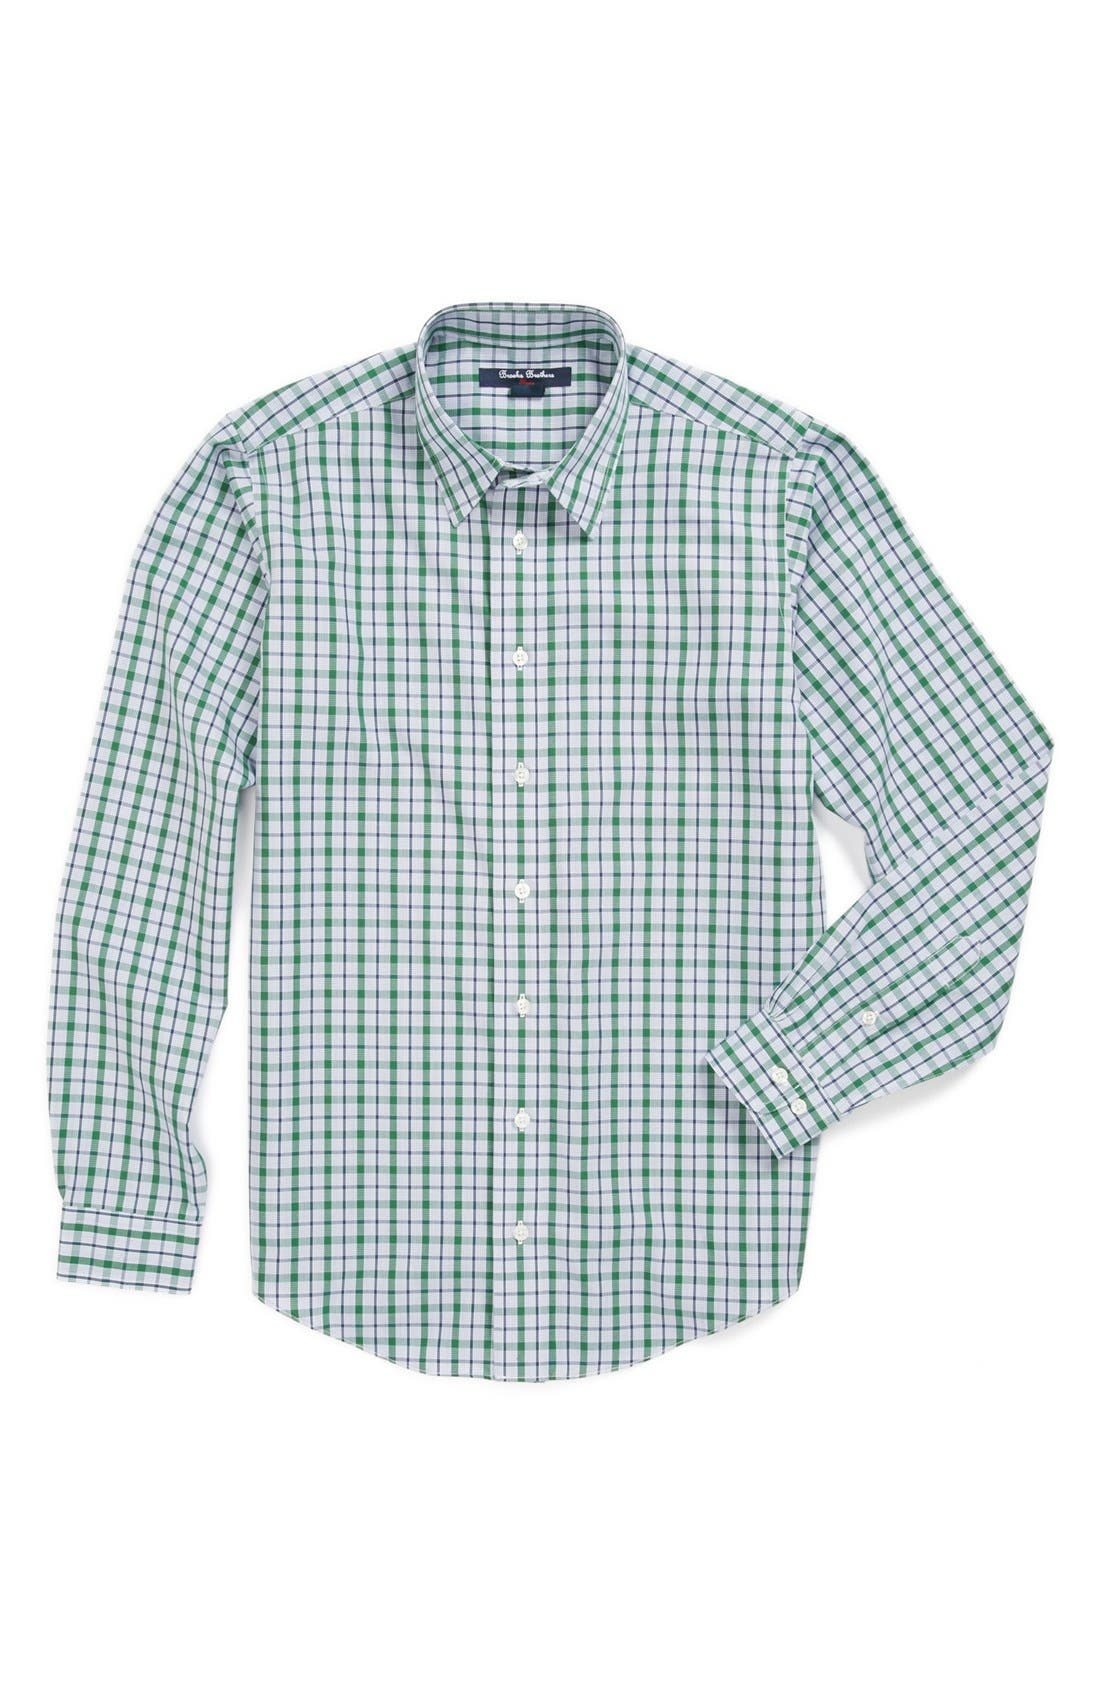 Alternate Image 1 Selected - Brooks Brothers Check Dress Shirt (Big Boys)